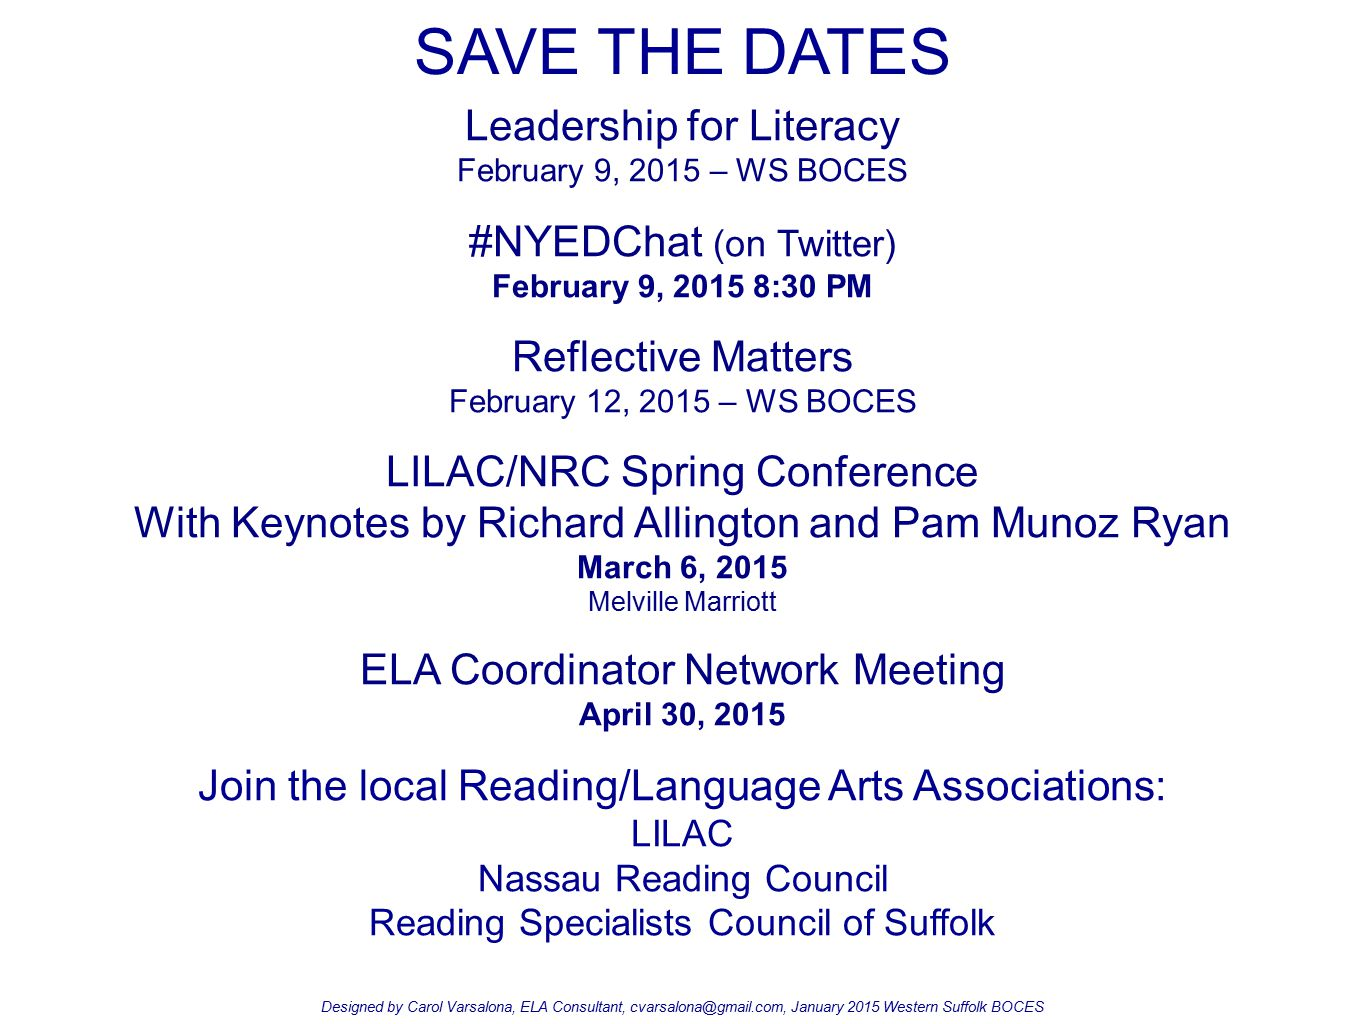 SAVE THE DATES Leadership for Literacy February 9, 2015 – WS BOCES #NYEDChat (on Twitter) February 9, 2015 8:30 PM Reflective Matters February 12, 2015 – WS BOCES LILAC/NRC Spring Conference With Keynotes by Richard Allington and Pam Munoz Ryan March 6, 2015 Melville Marriott ELA Coordinator Network Meeting April 30, 2015 Join the local Reading/Language Arts Associations: LILAC Nassau Reading Council Reading Specialists Council of Suffolk Designed by Carol Varsalona, ELA Consultant, cvarsalona@gmail.com, January 2015 Western Suffolk BOCES